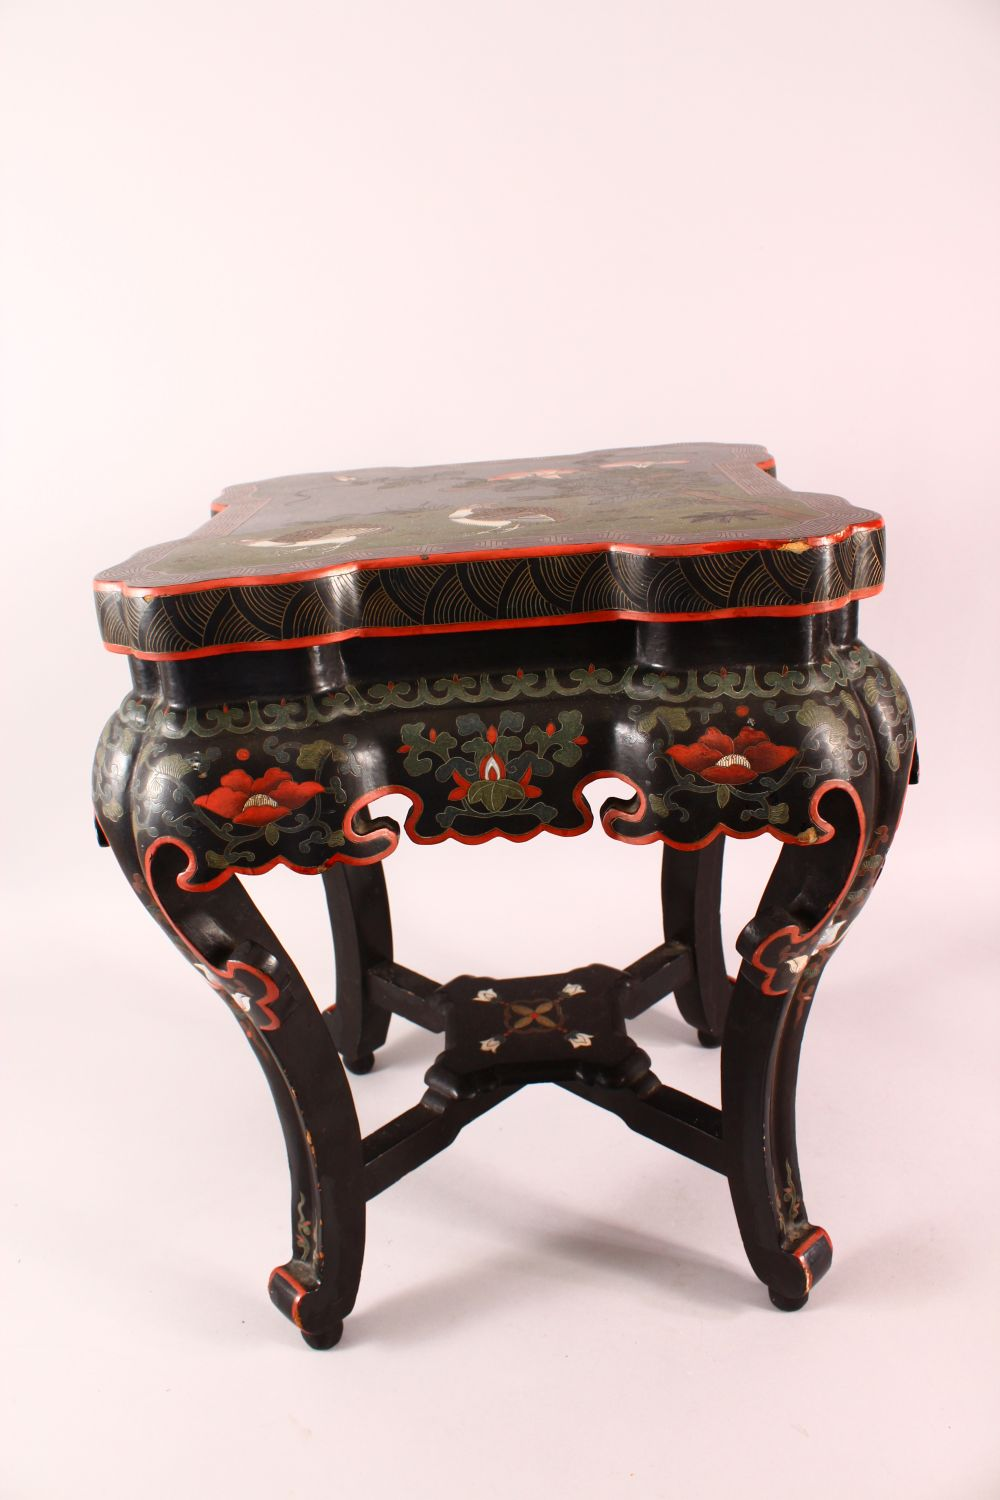 A GOOD CHINESE CARVED WOOD & LACQUER DECORATED LOW TABLE, the top with decoration of quails in - Image 5 of 6